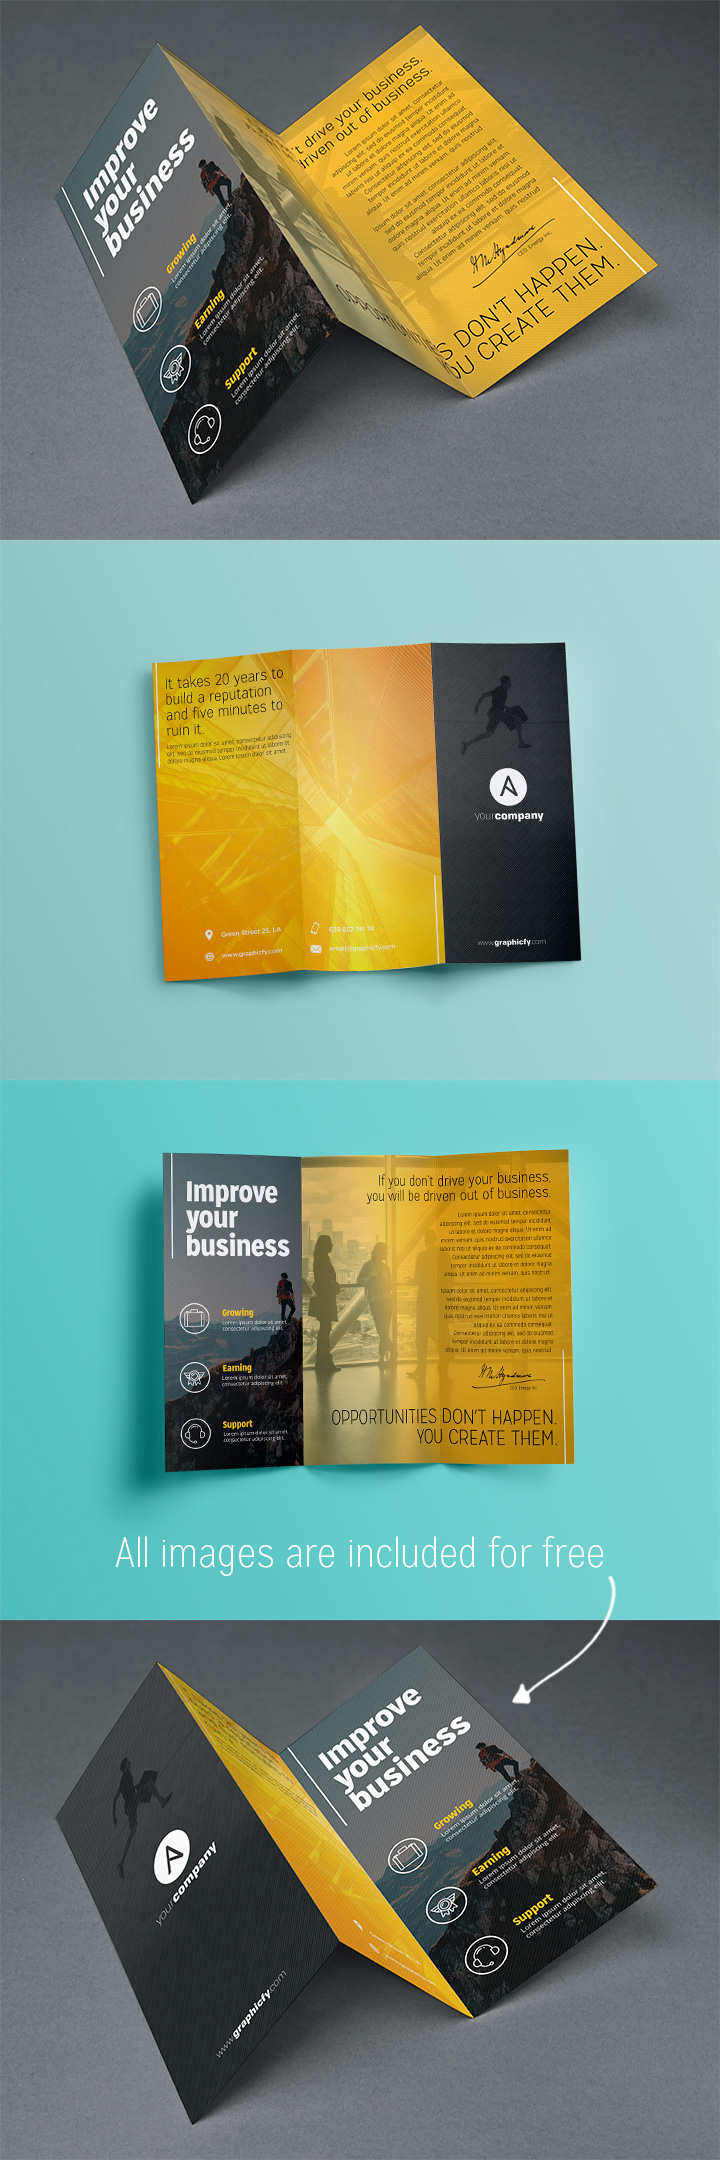 Tri fold brochure template psd brochure templates for 2 fold brochure template psd